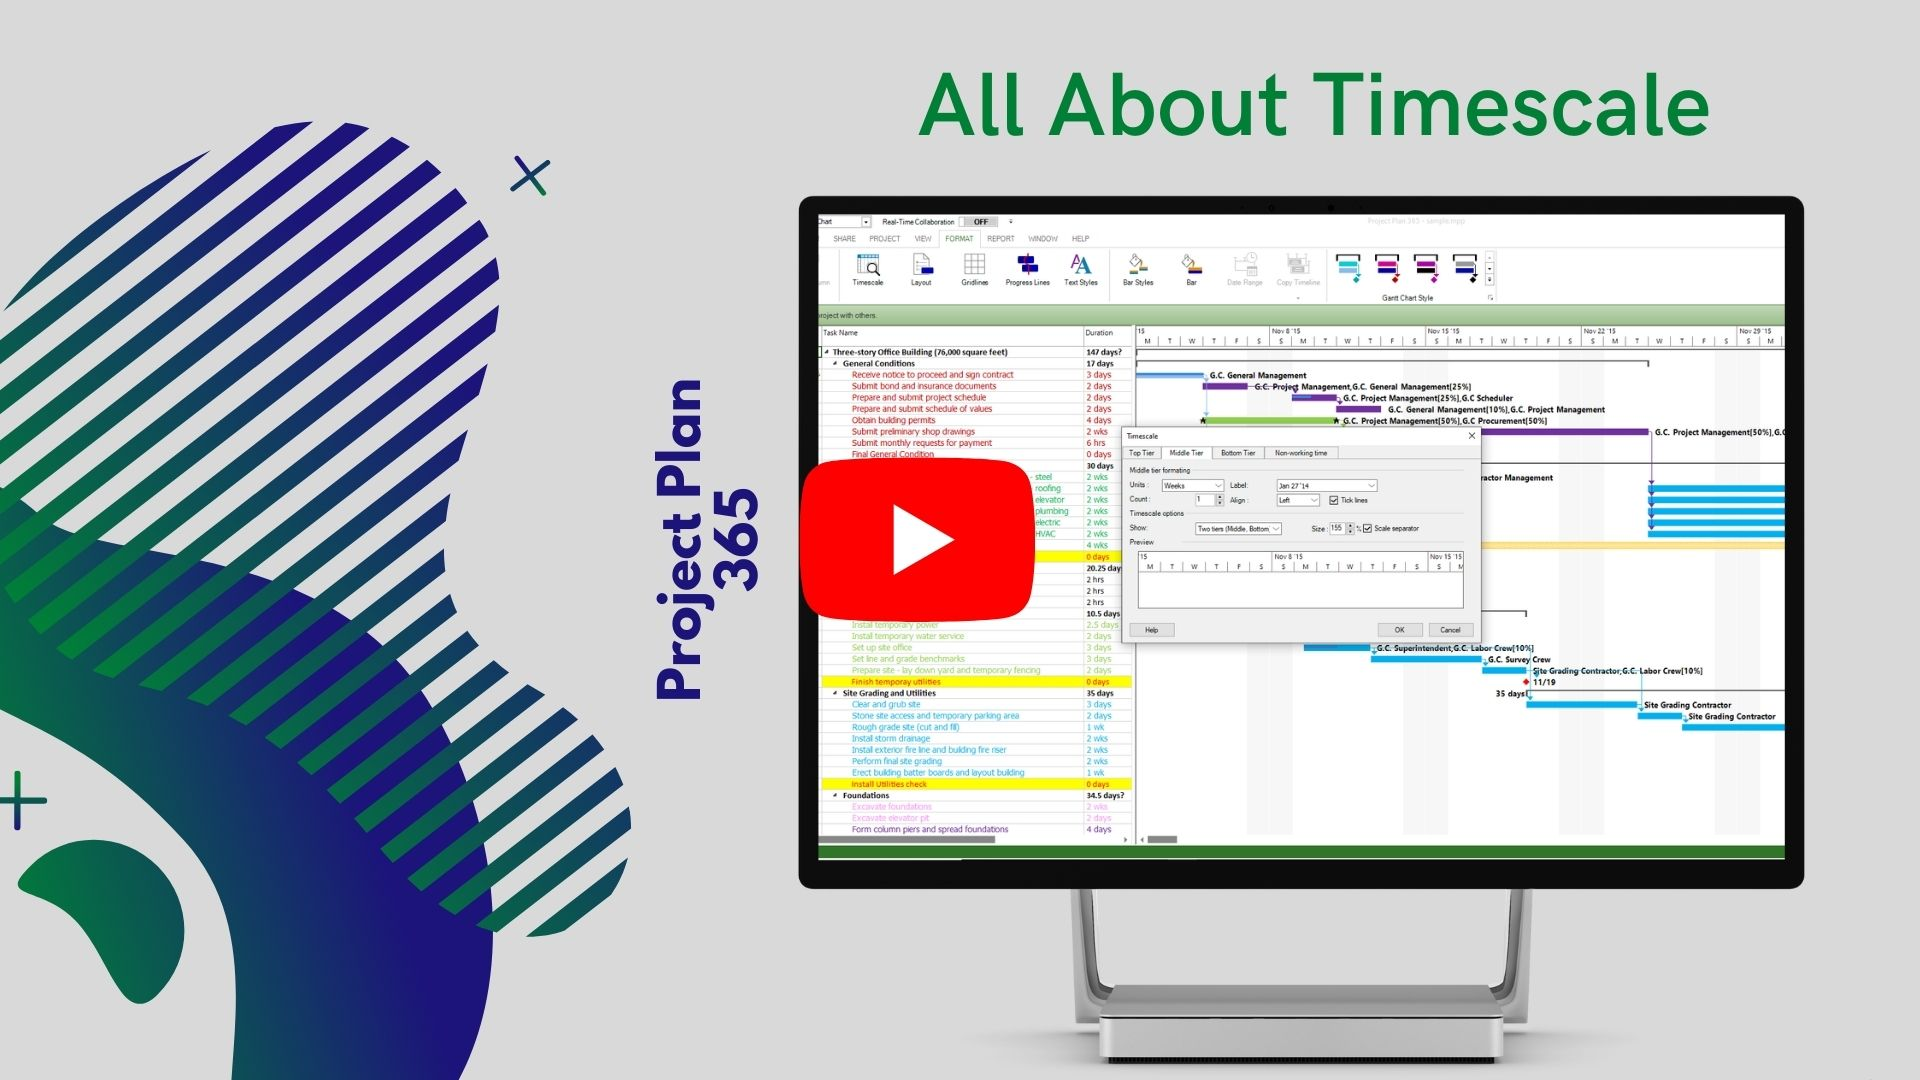 All About Timescale